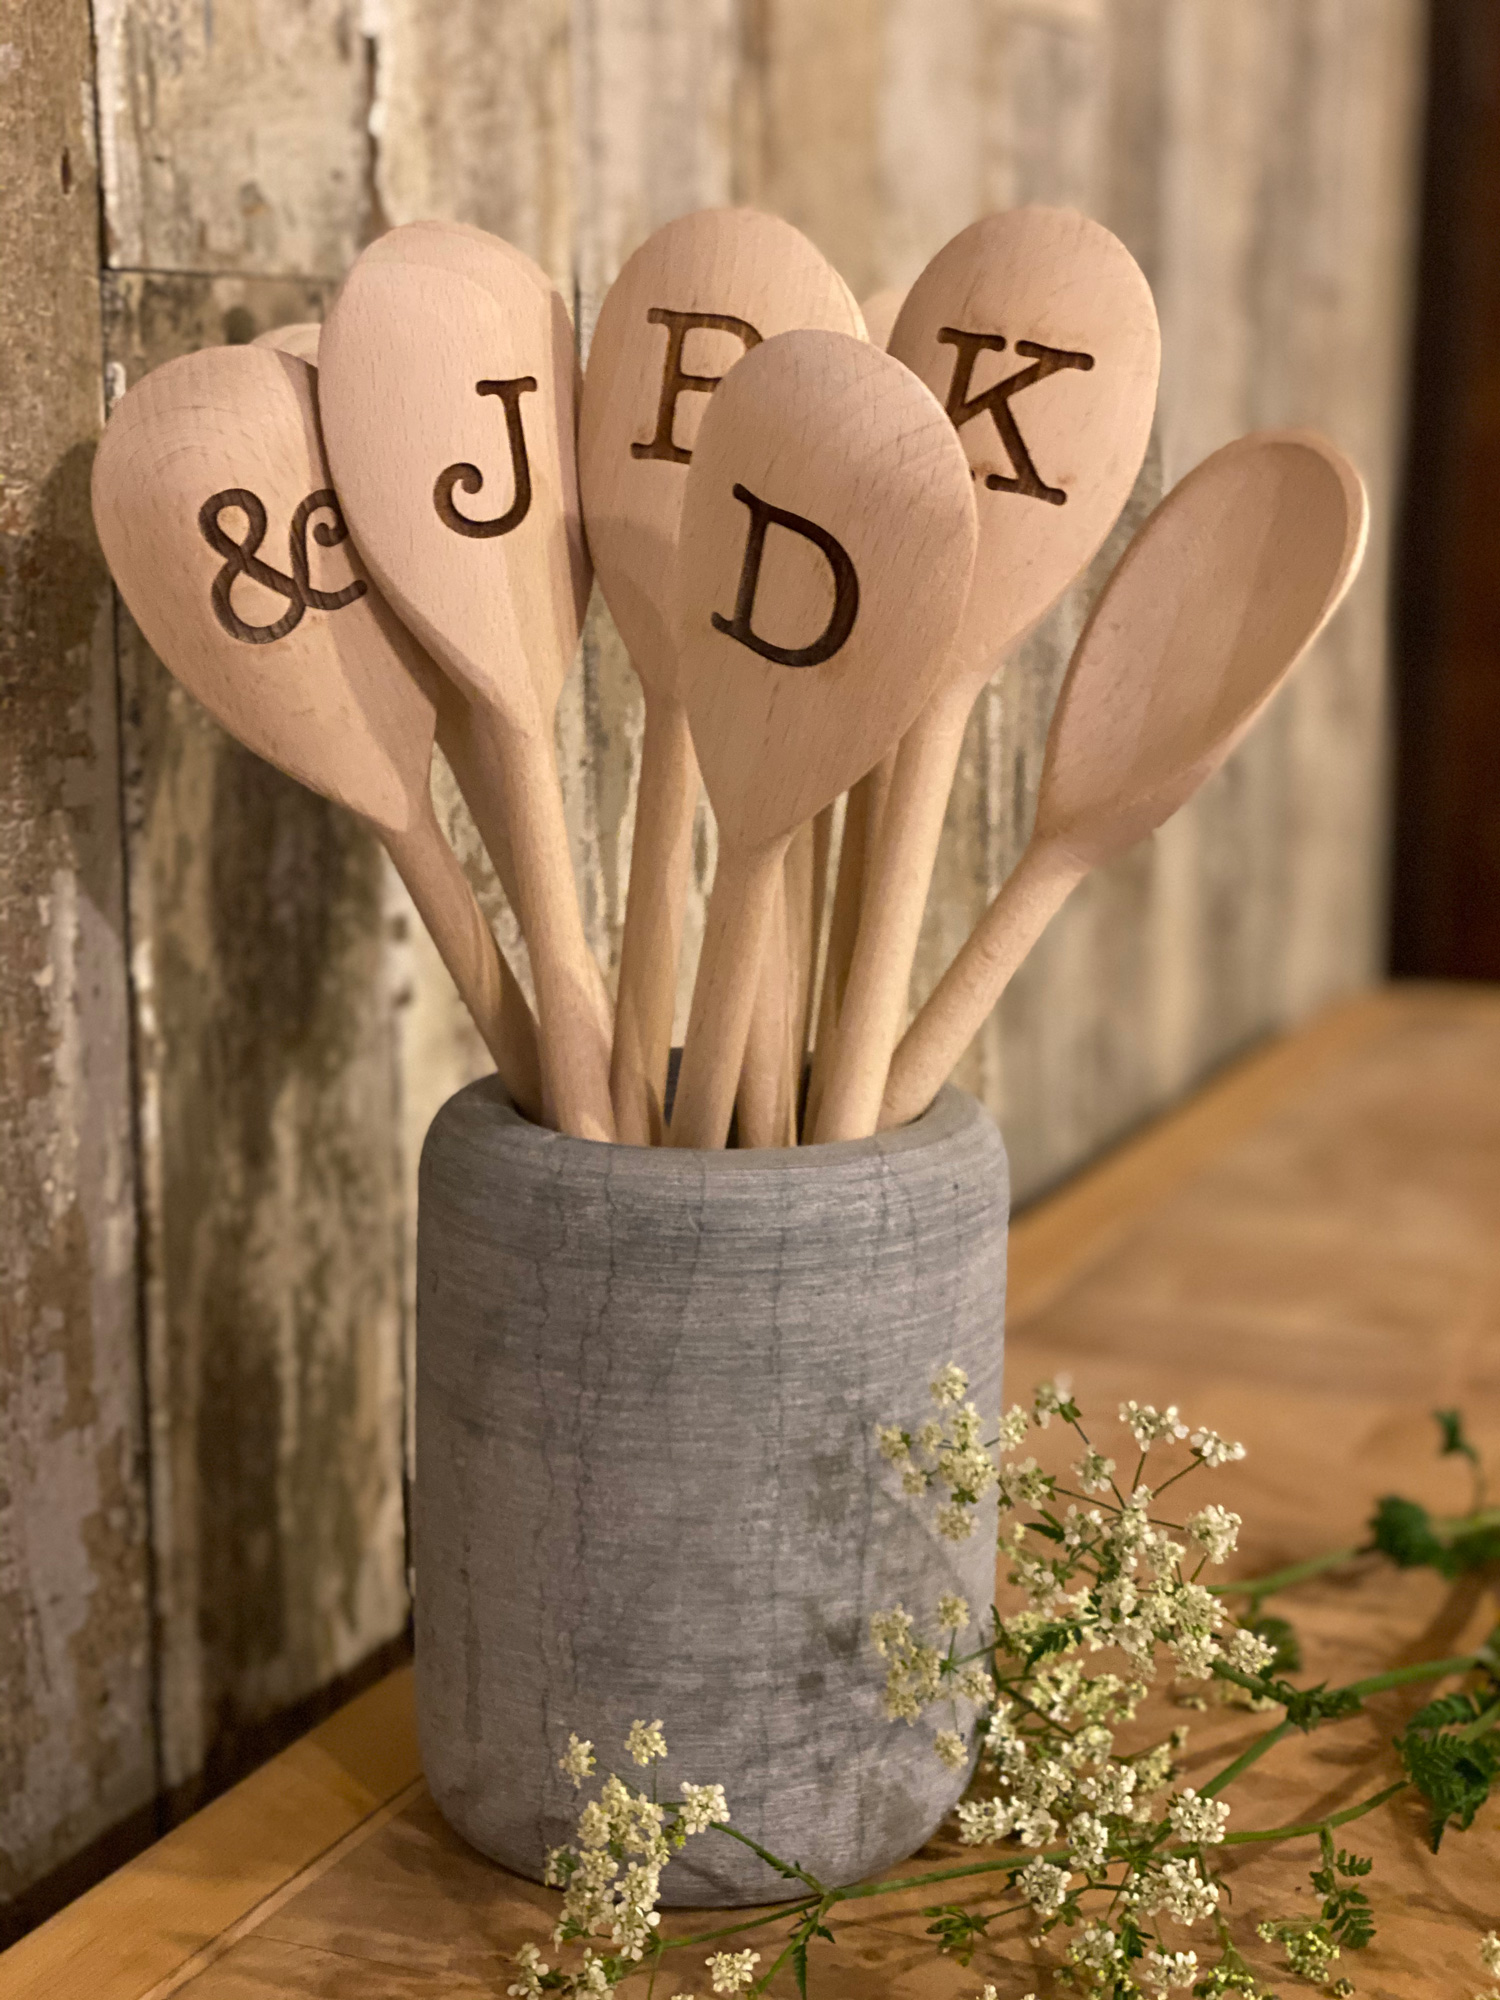 Wooden spoons with alphabet letters in concrete holder